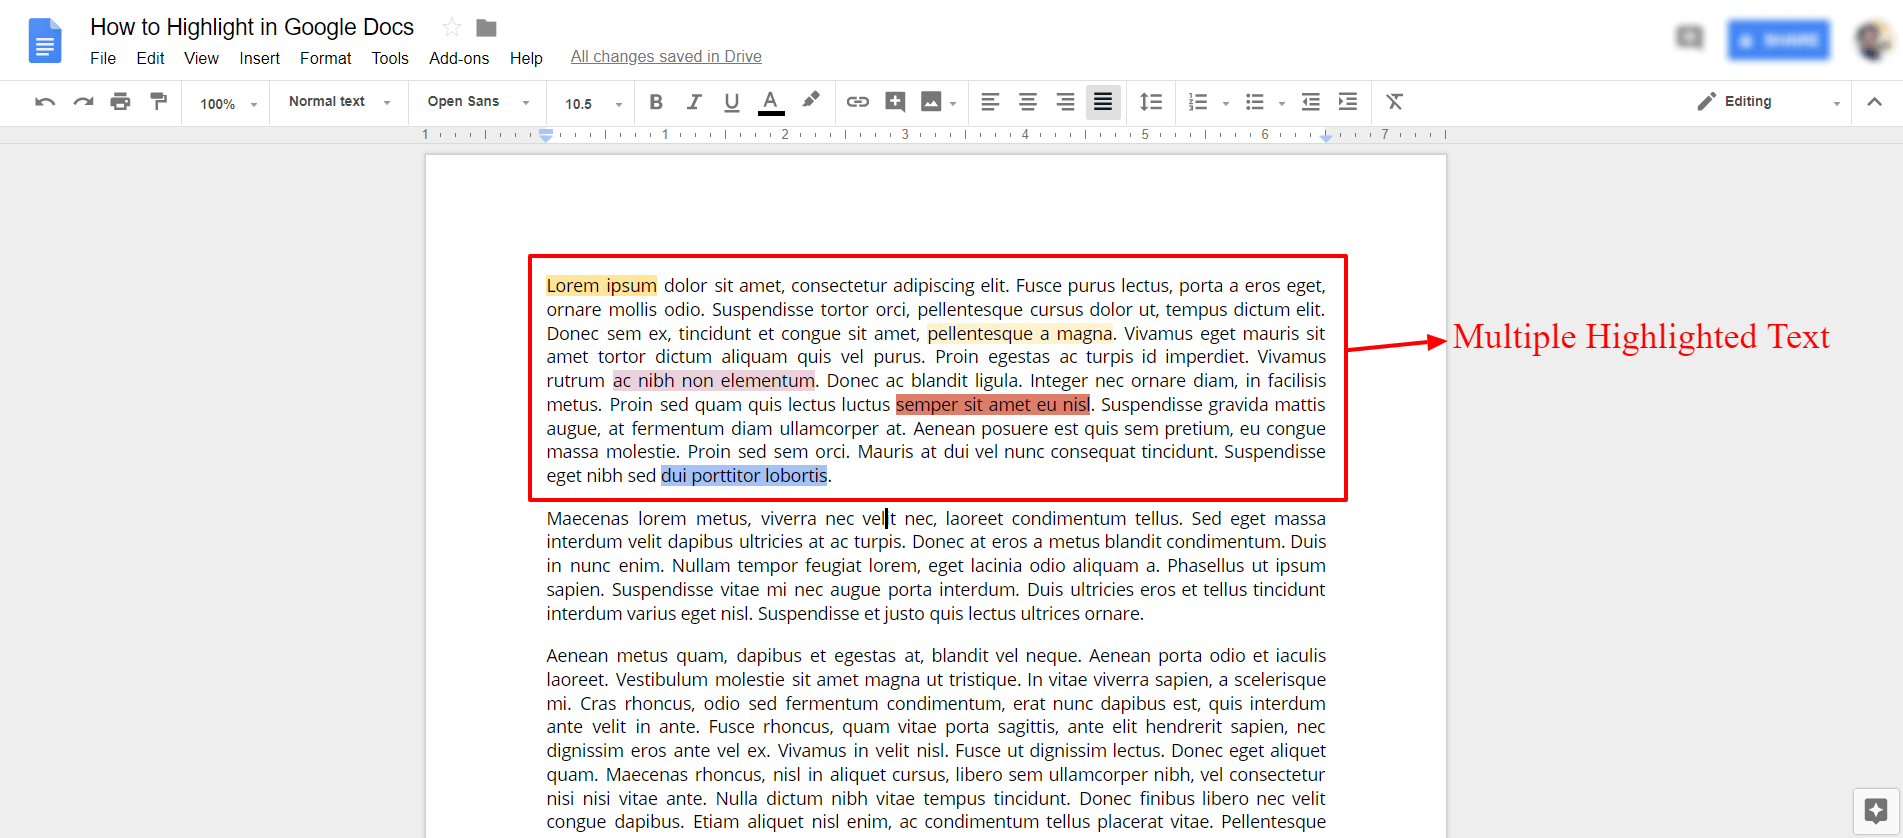 Multiple highlighted text in google docs